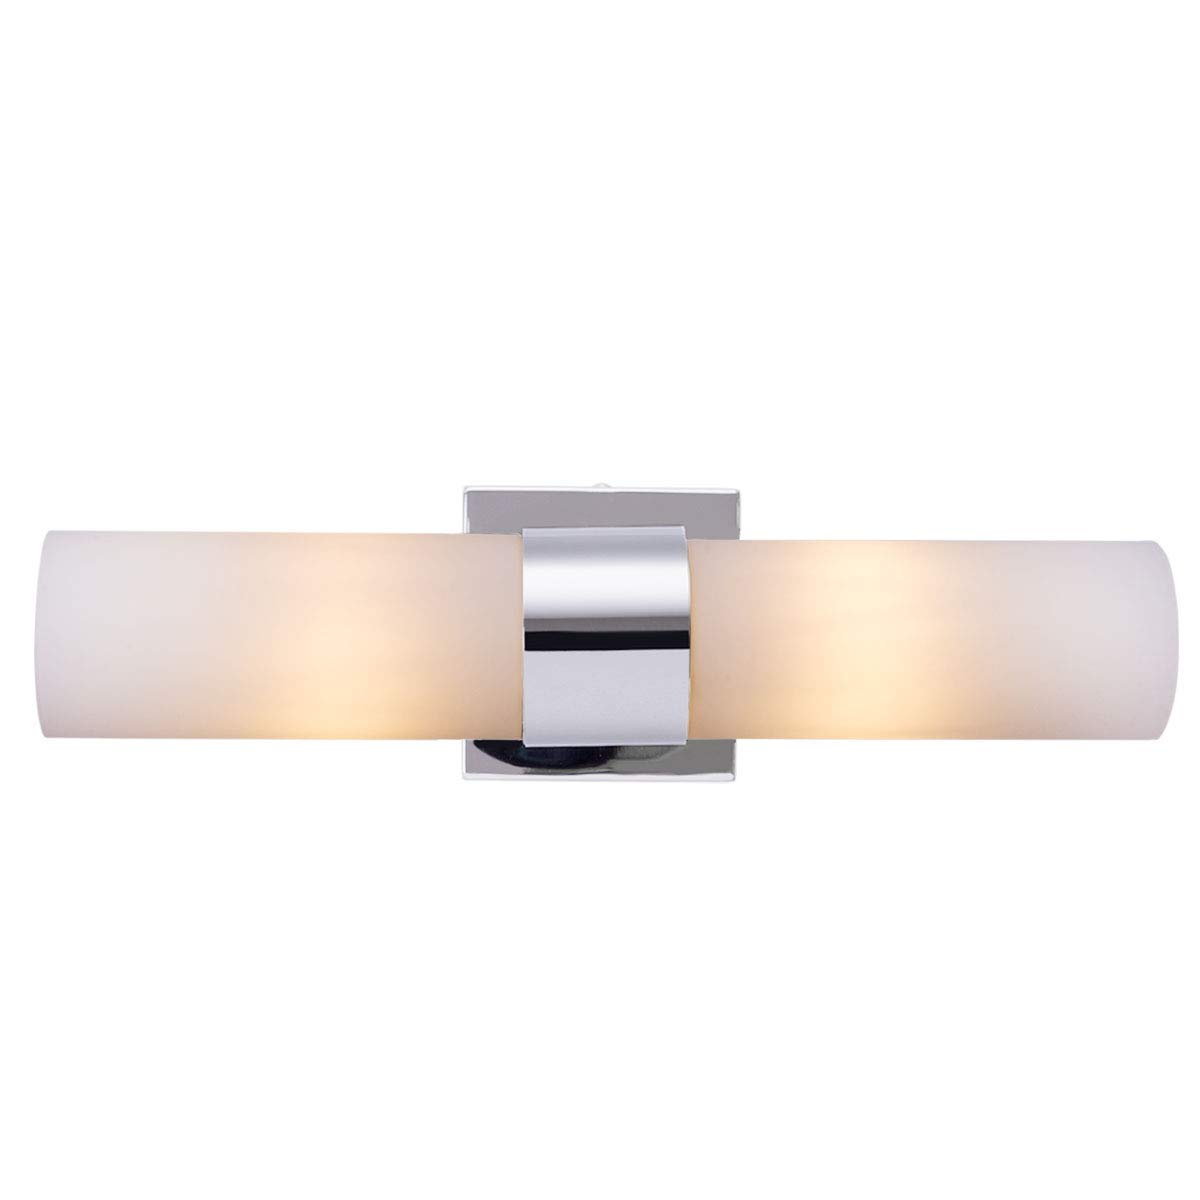 2-Light Vanity Light, Bathroom Wall Sconce Fixture, Polished Chrome Finished and Glass Shade, Simple and Modern Soft Lighting Fixture for Bedroom, Bathroom and Living Room (Bulbs Included)